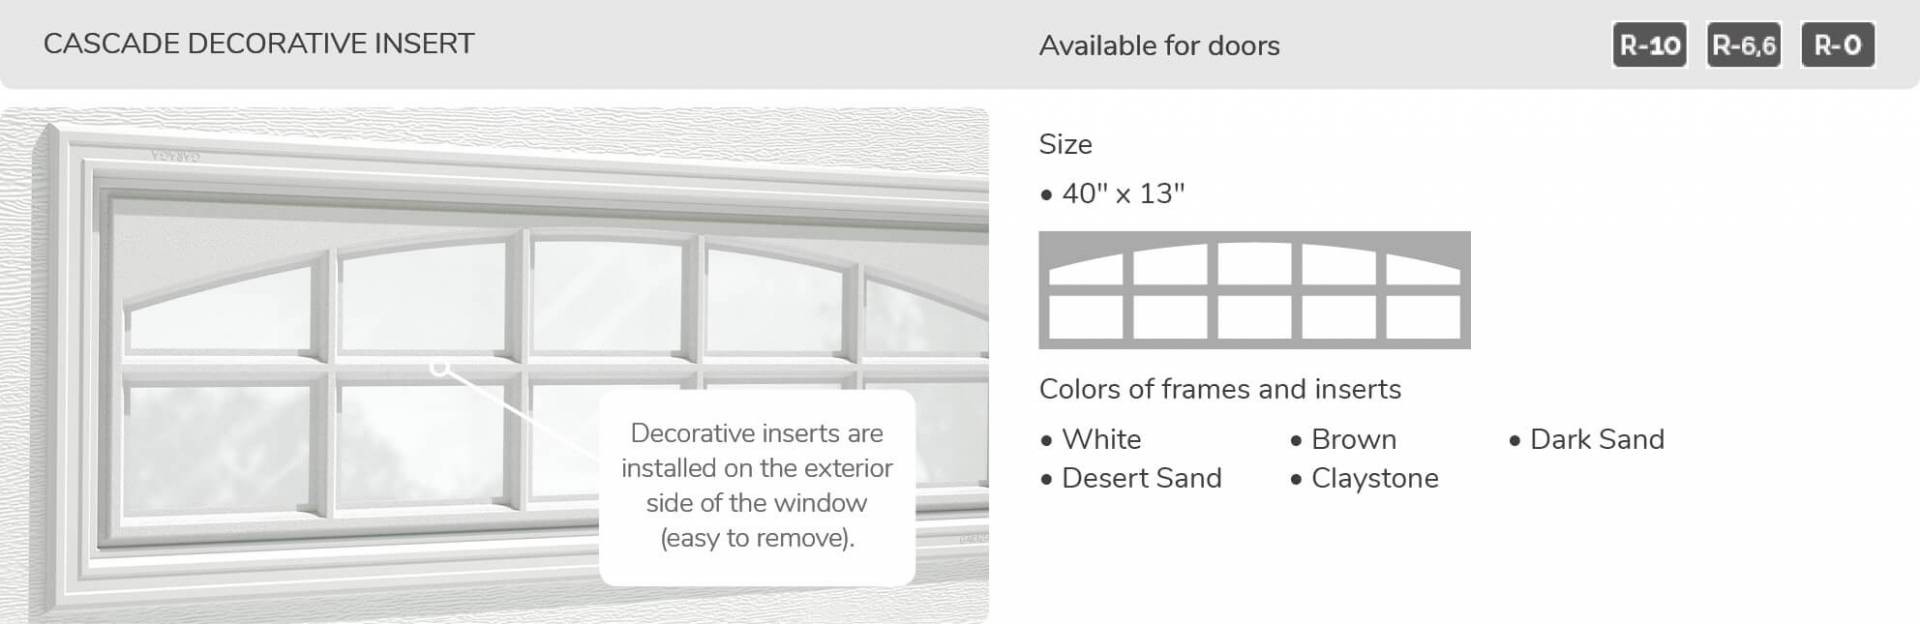 Cascade Decorative Insert, 40' x 13', available for doors R-10, R-6.6, R-0